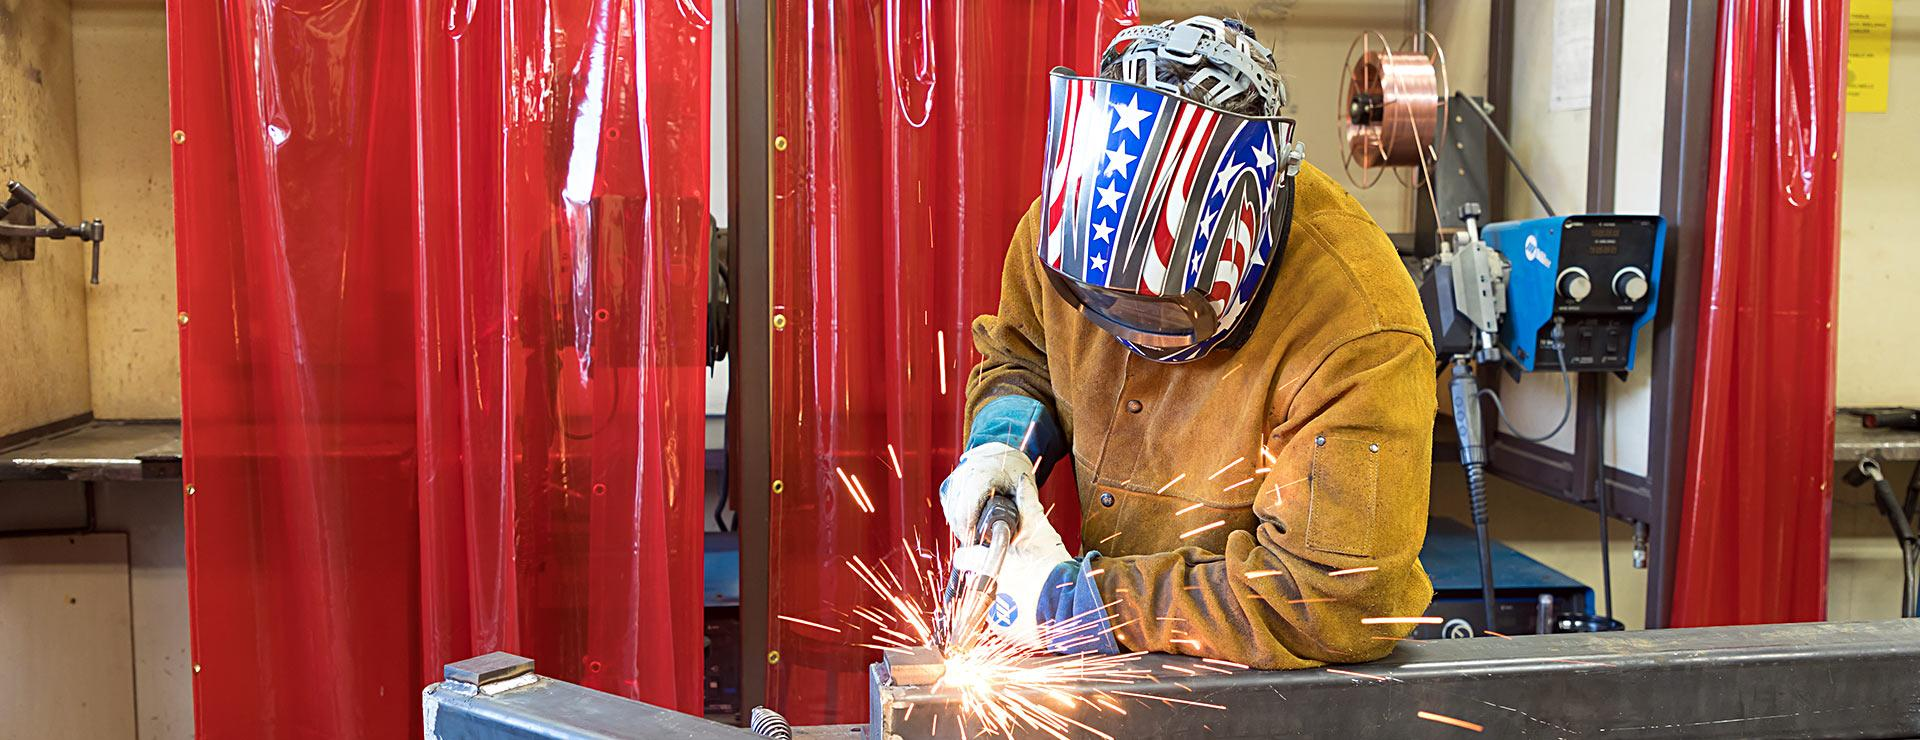 Welding Technology Degrees And Certificate Programs